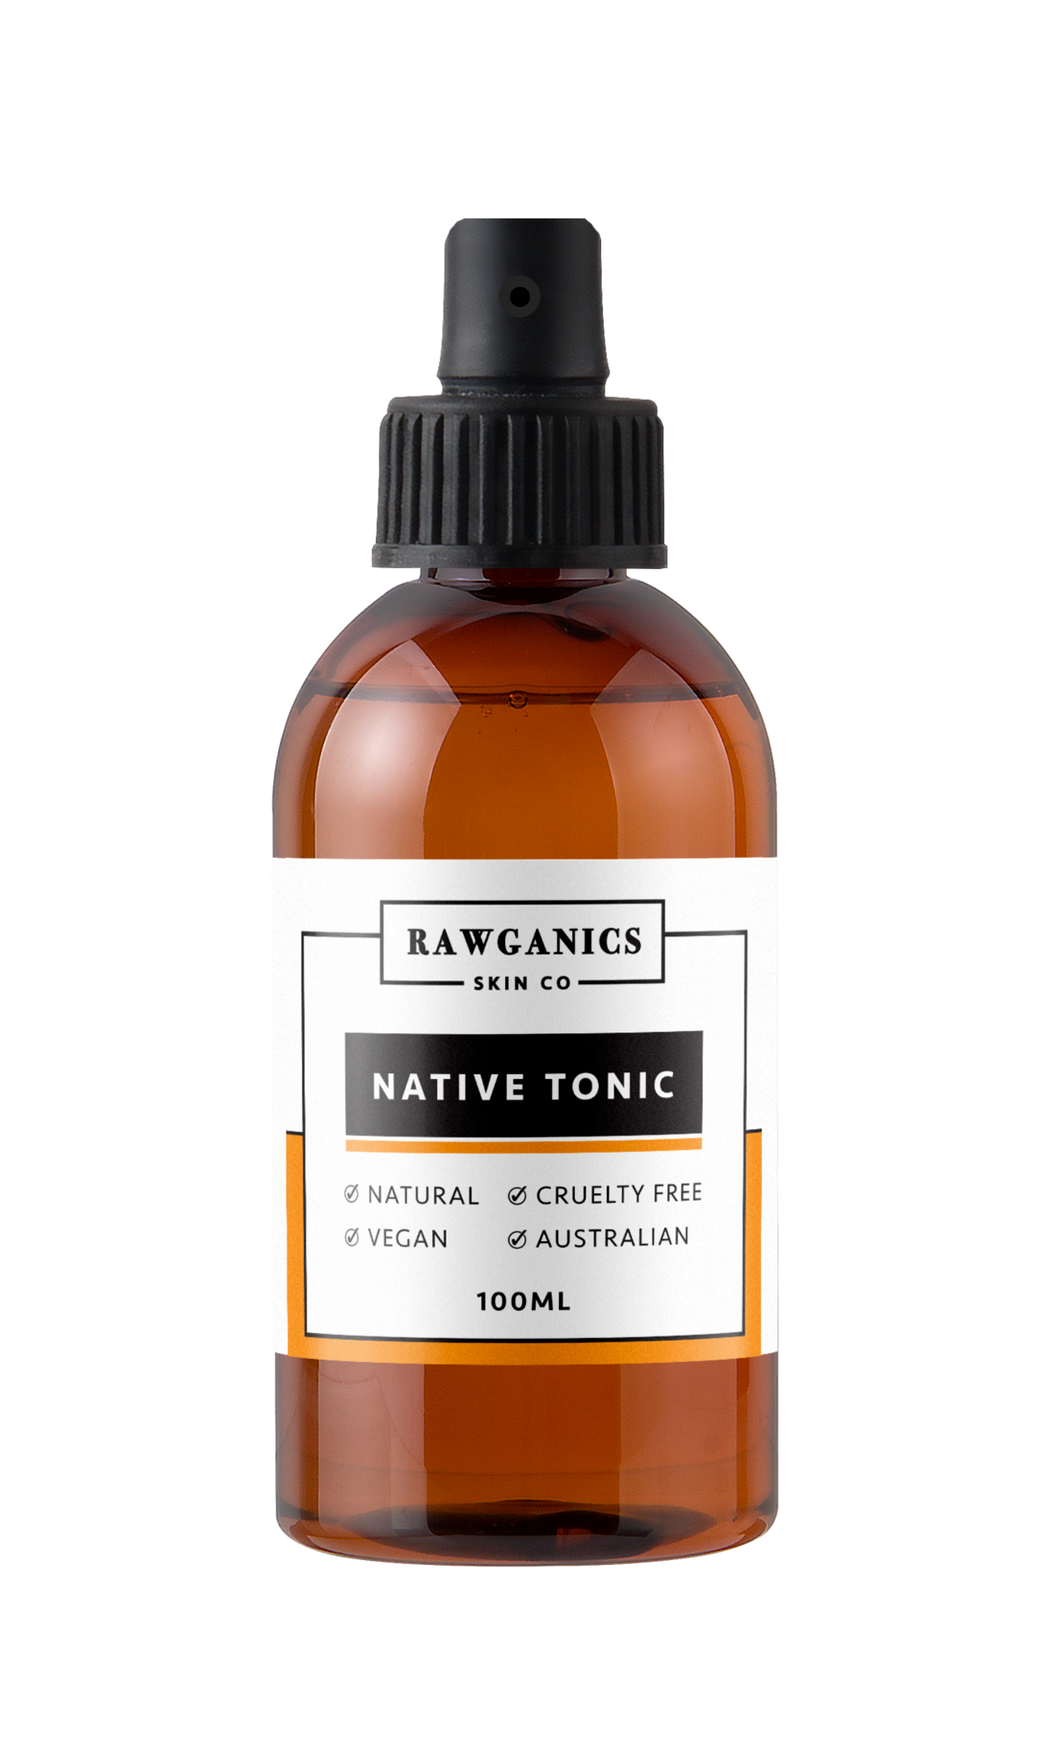 Native Tonic